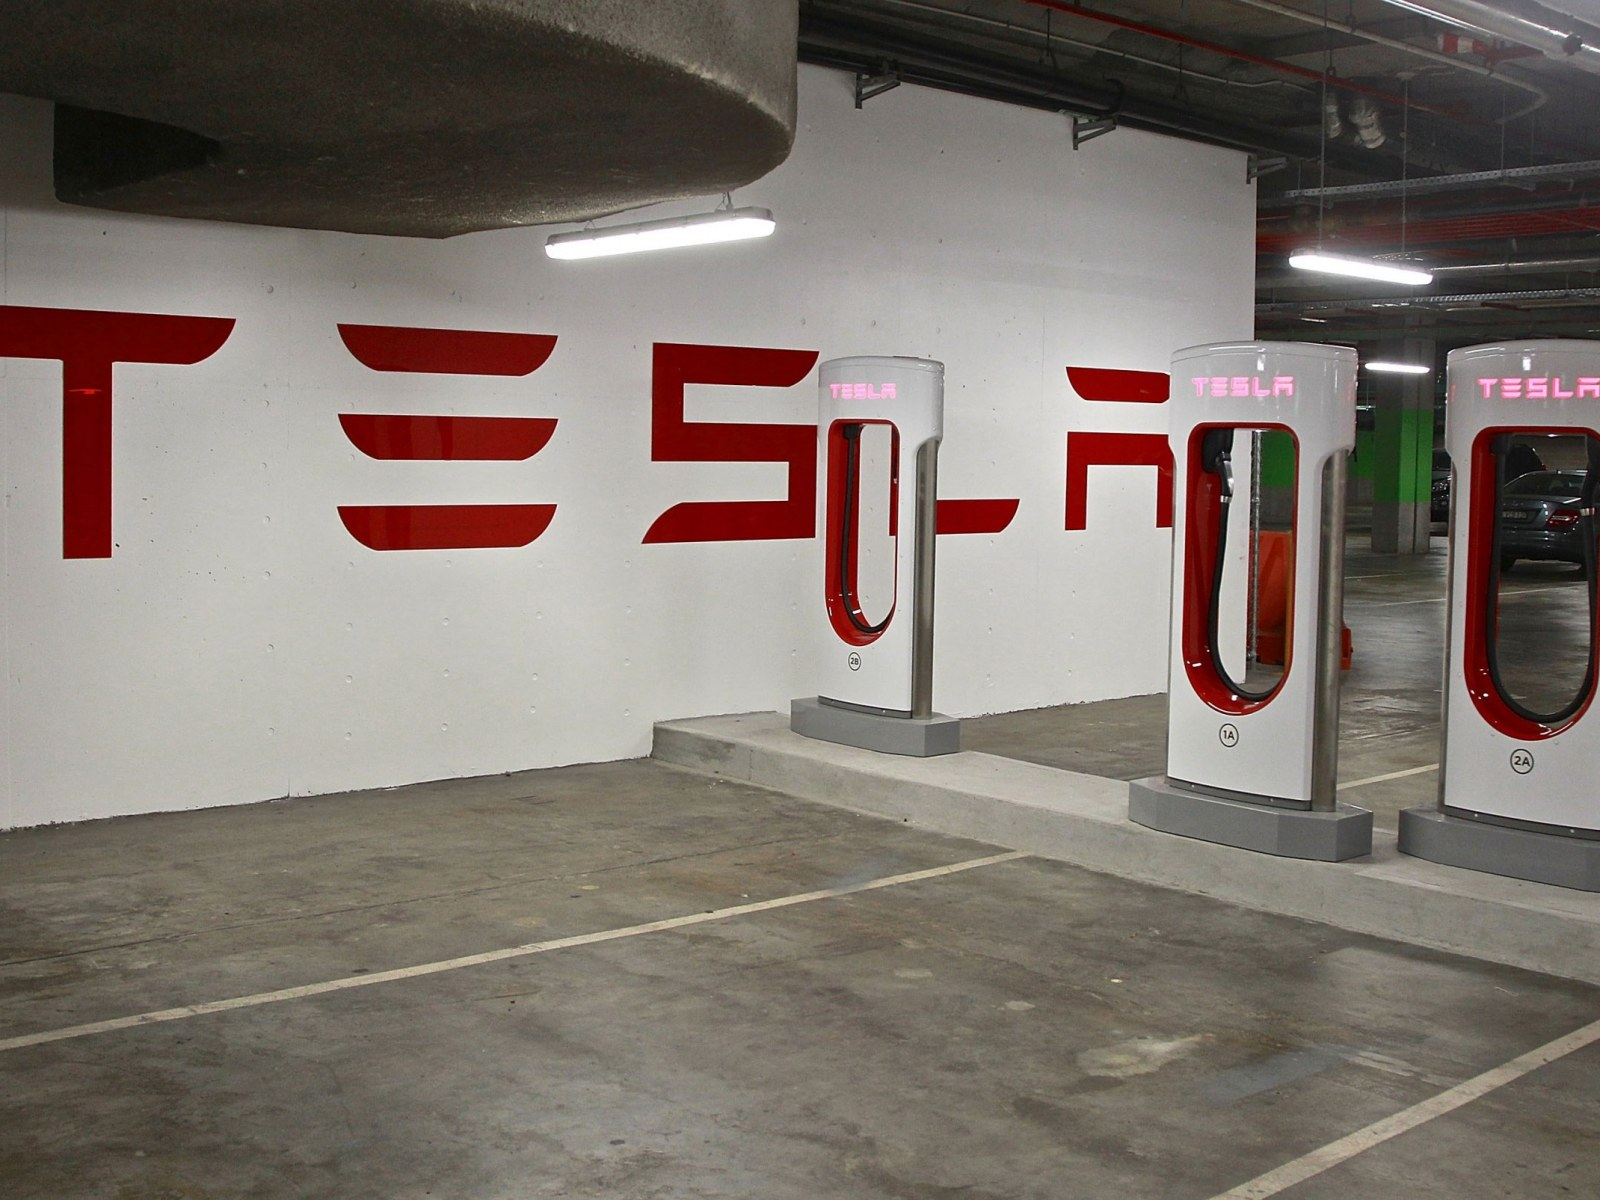 Tesla New Supercharger Prices: How Much Does Your Nearest